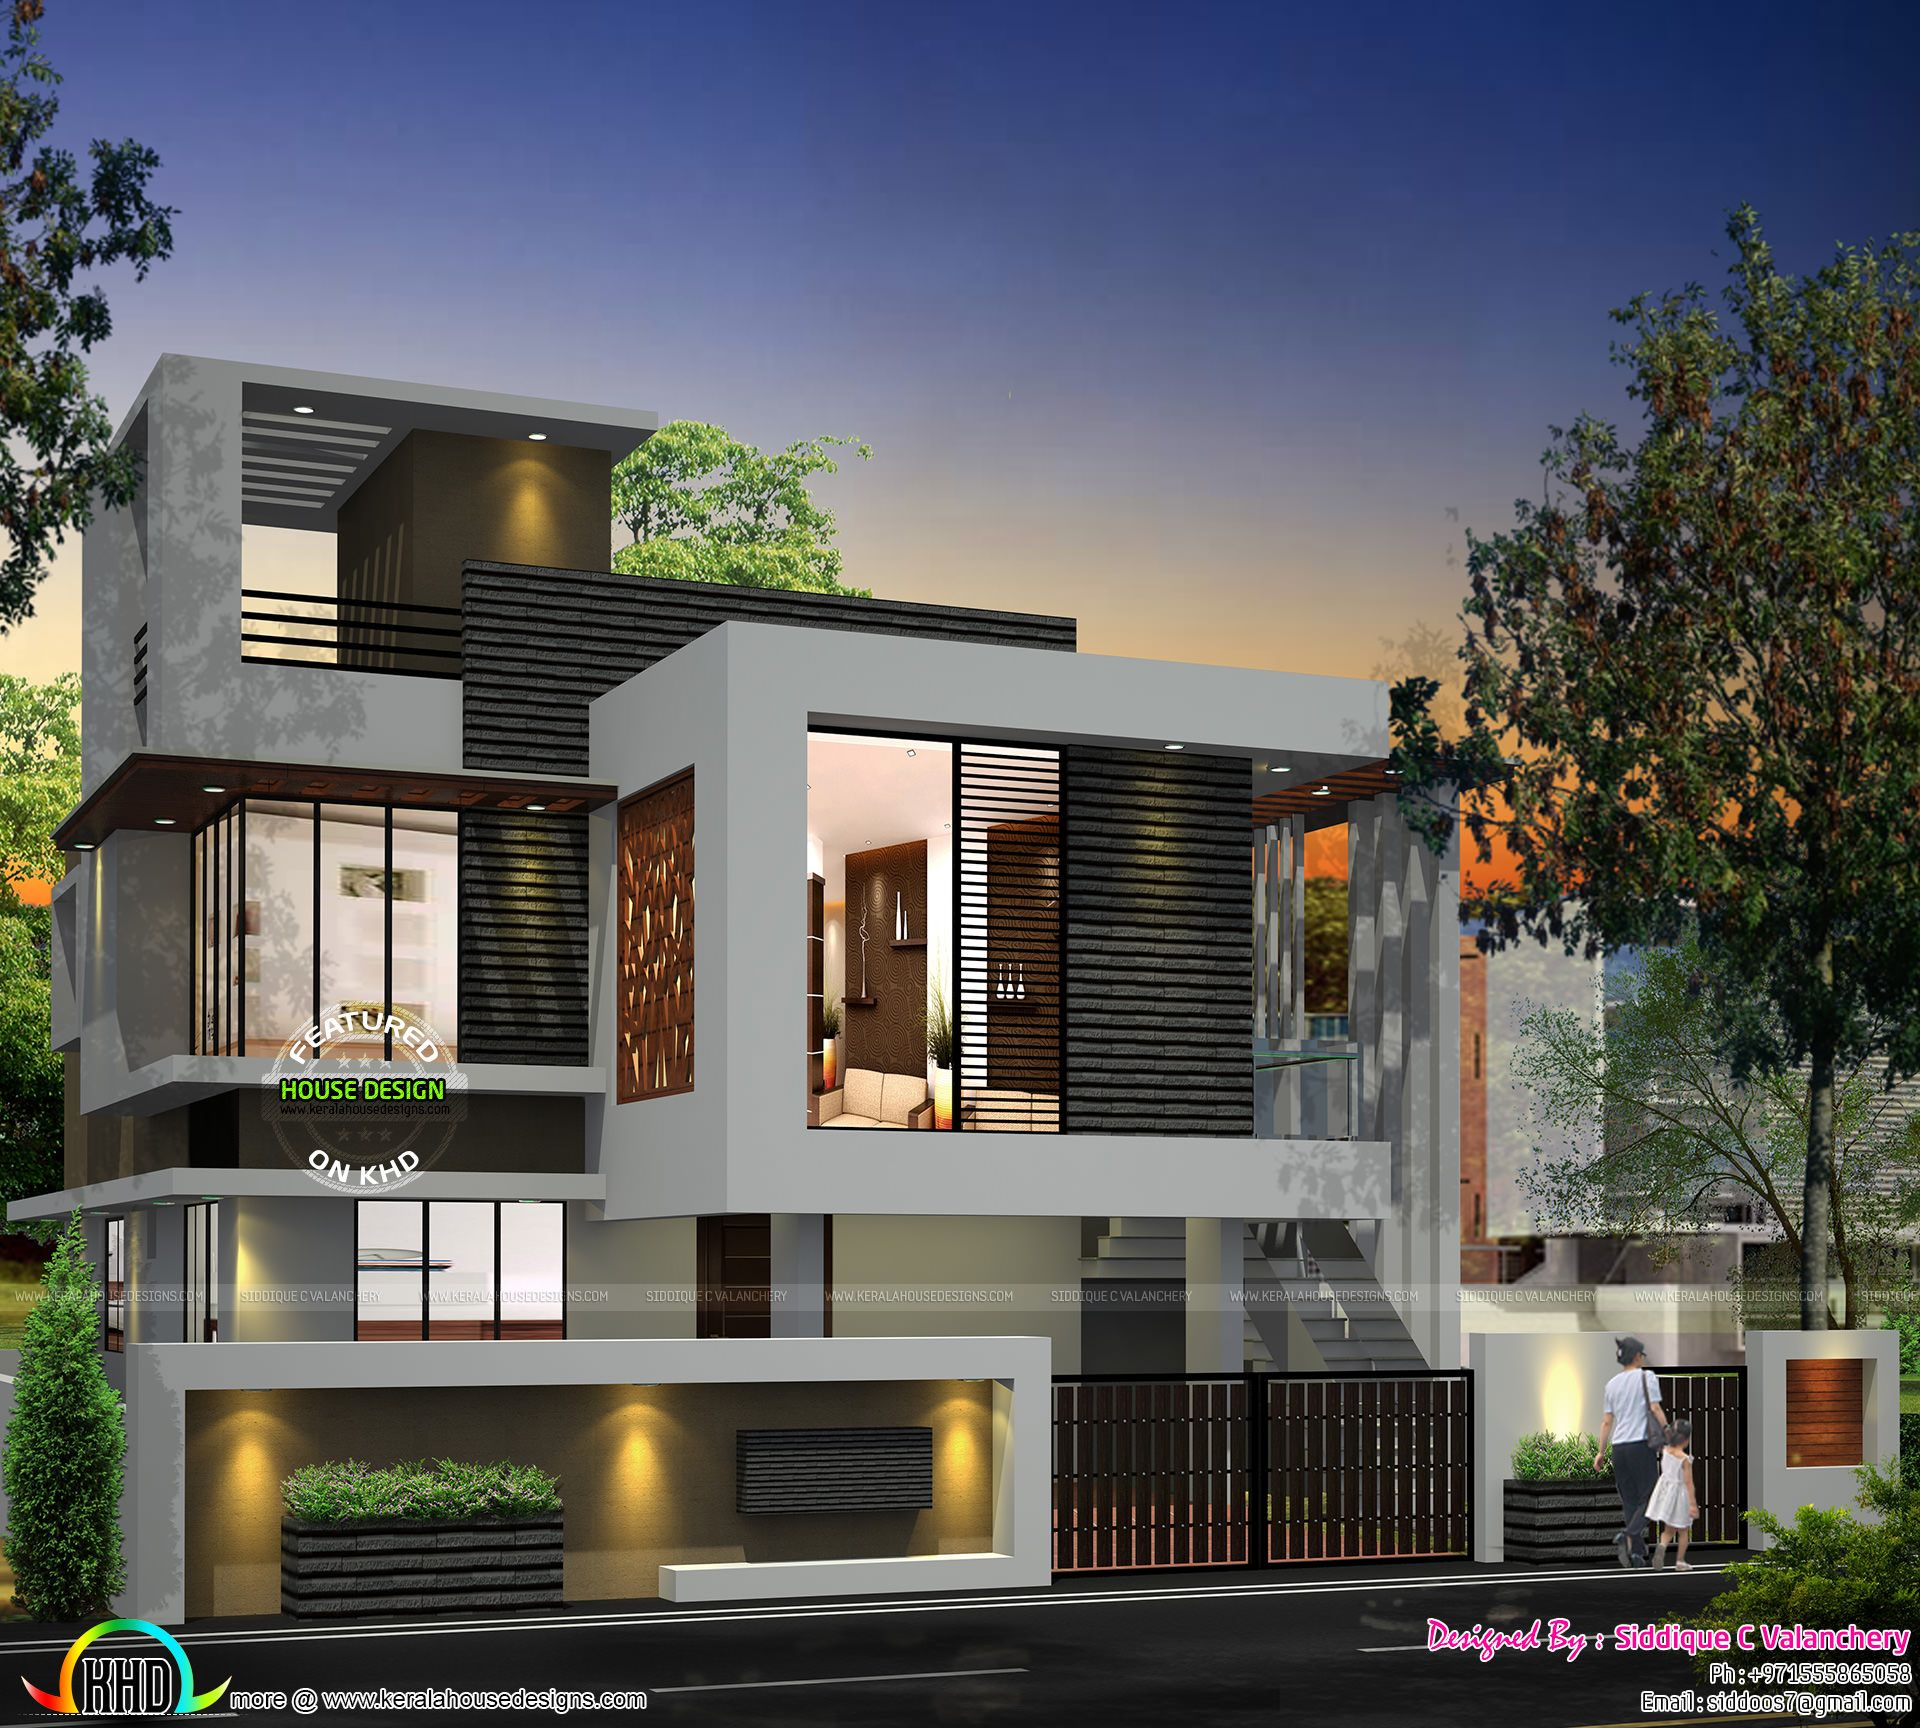 aab182d28bbb1395297909be3ed2d352 - 19+ Front Side Front Elevation Modern Small Modern House Designs Images